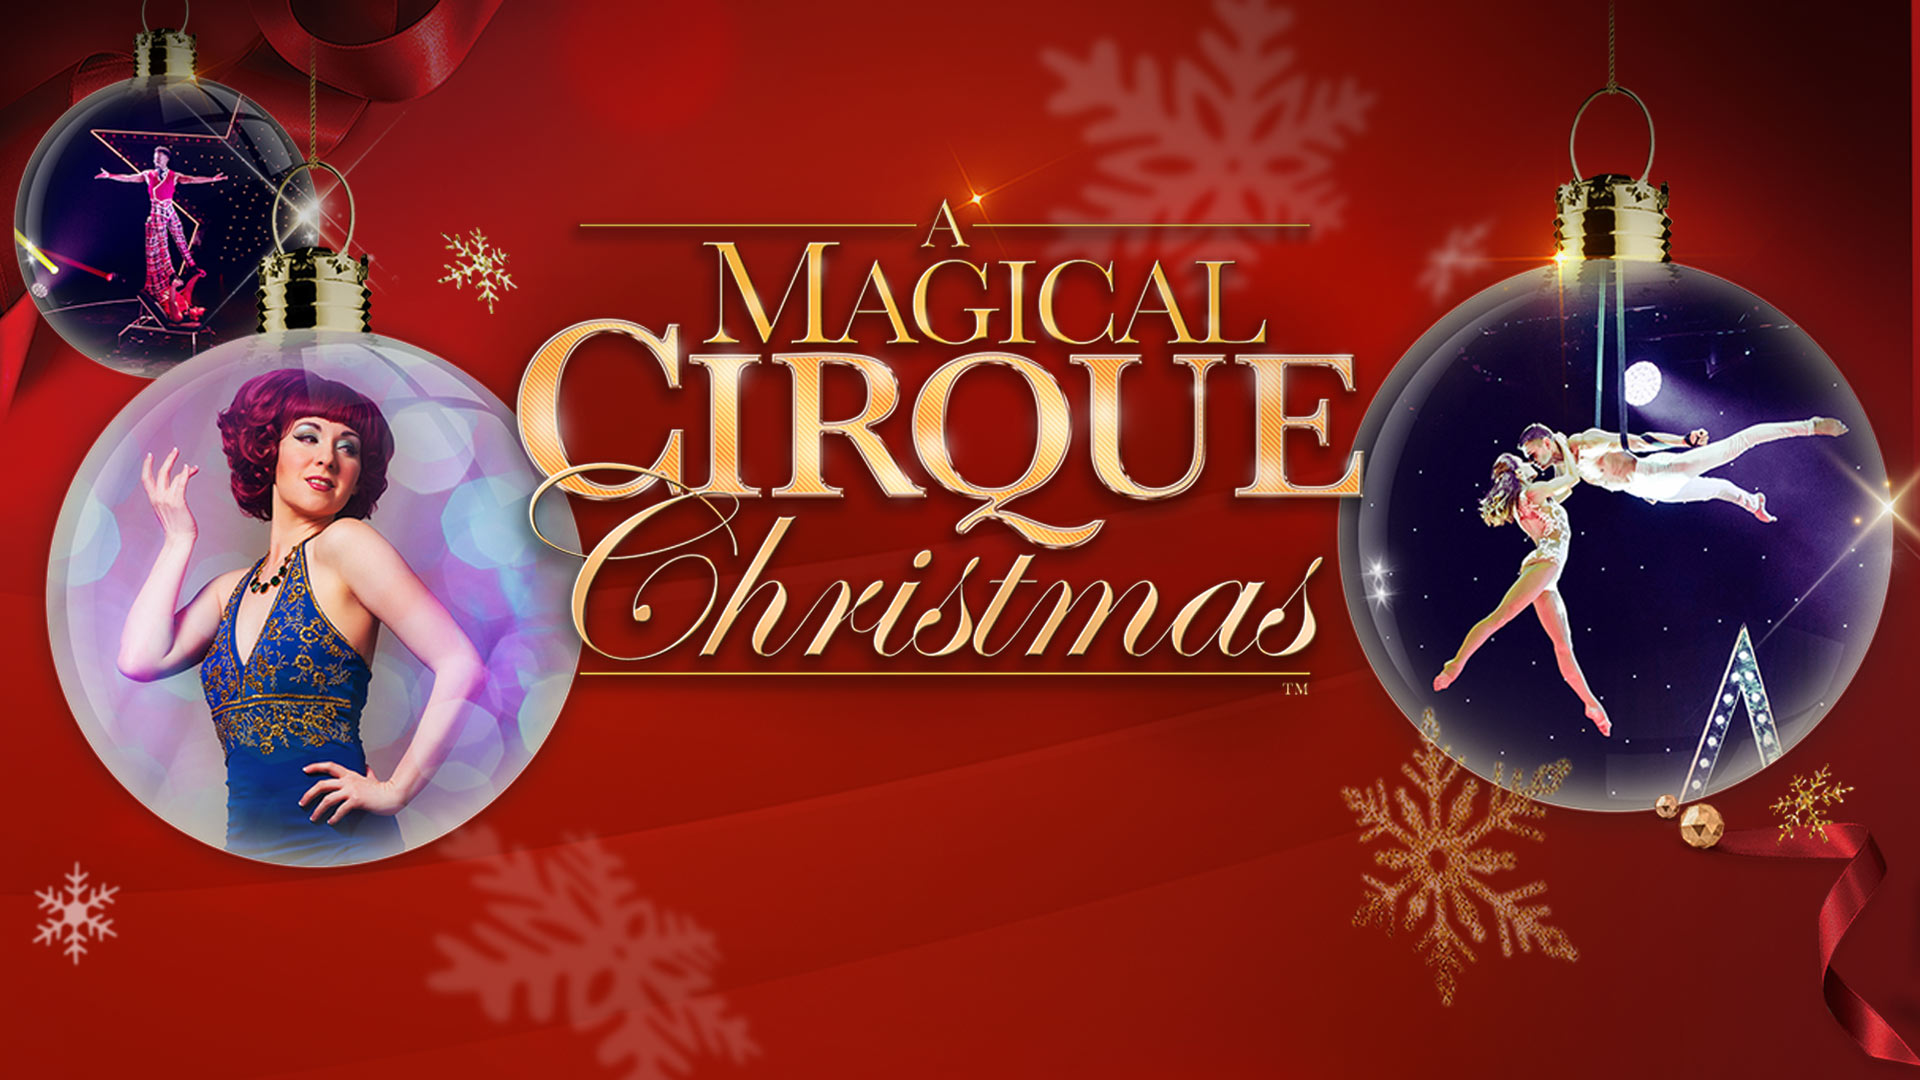 a magical cirque christmas, cirque, holiday show, tysons, capital one hall, things to do, capital one center, family show